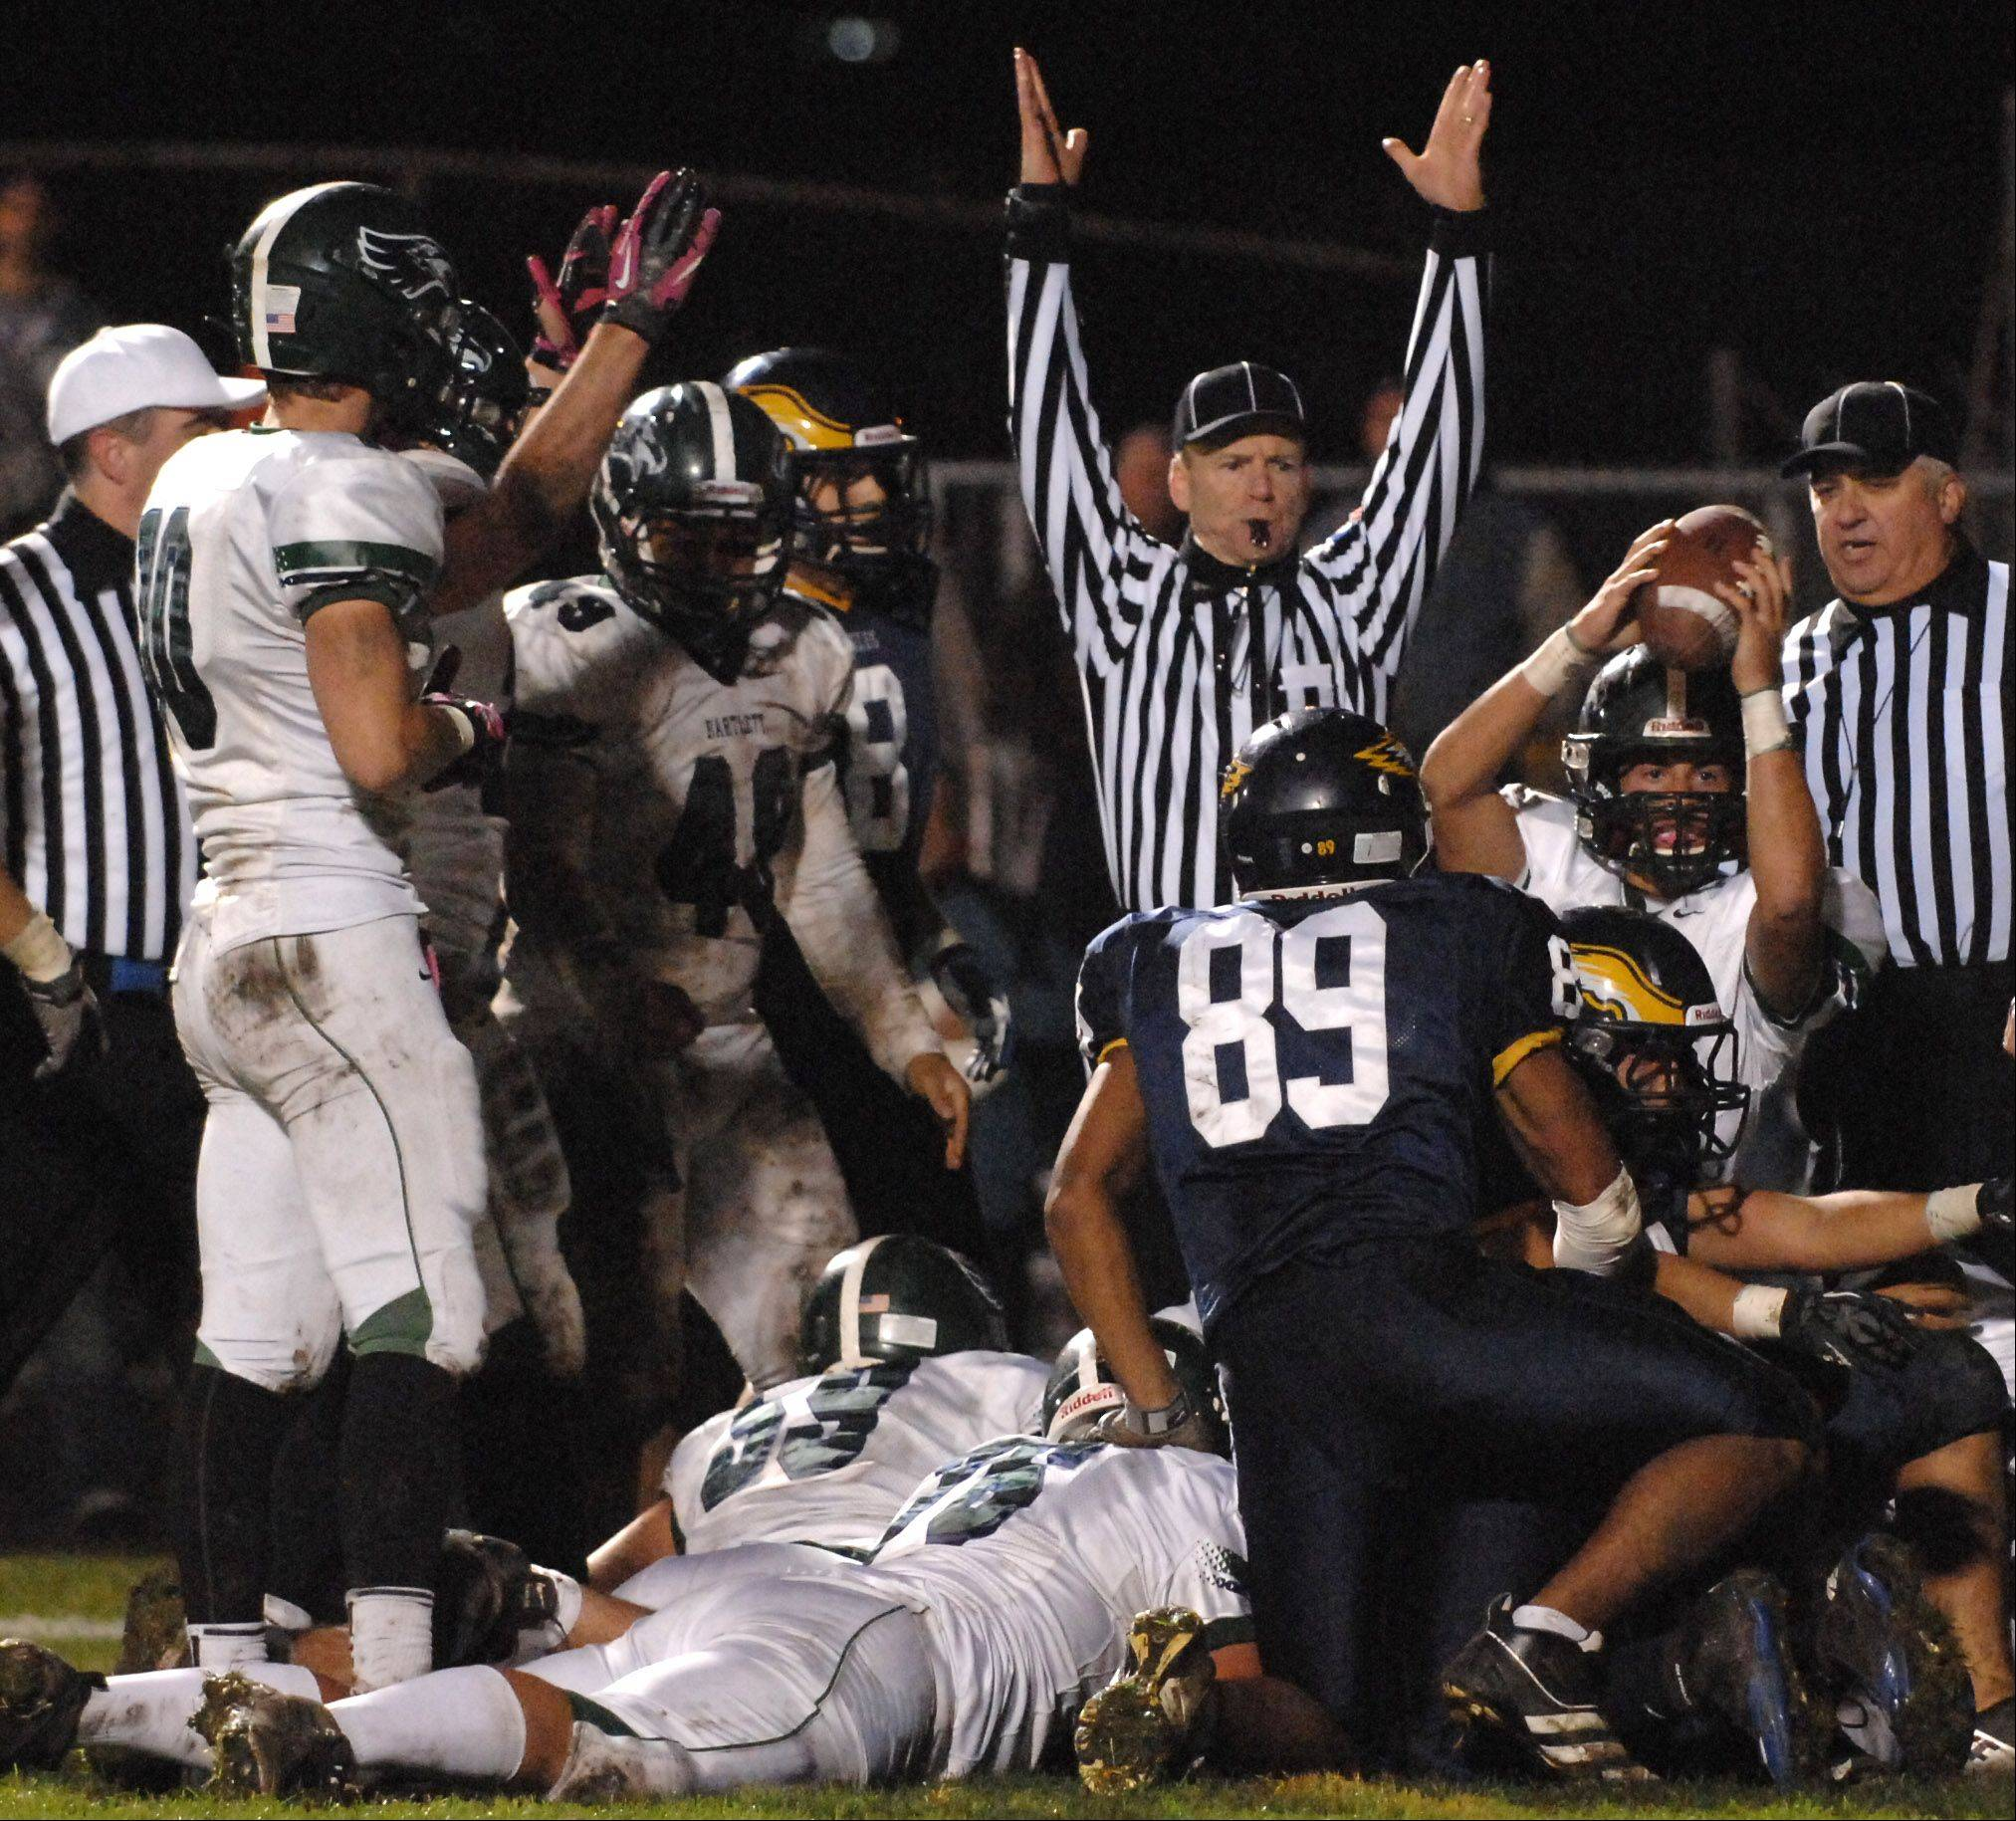 Bartlett's Kyle Garcia, 11, holds up the ball as the referee signals touchdown to put the Hawks up 14-0 over Leyden in Northlake Friday.